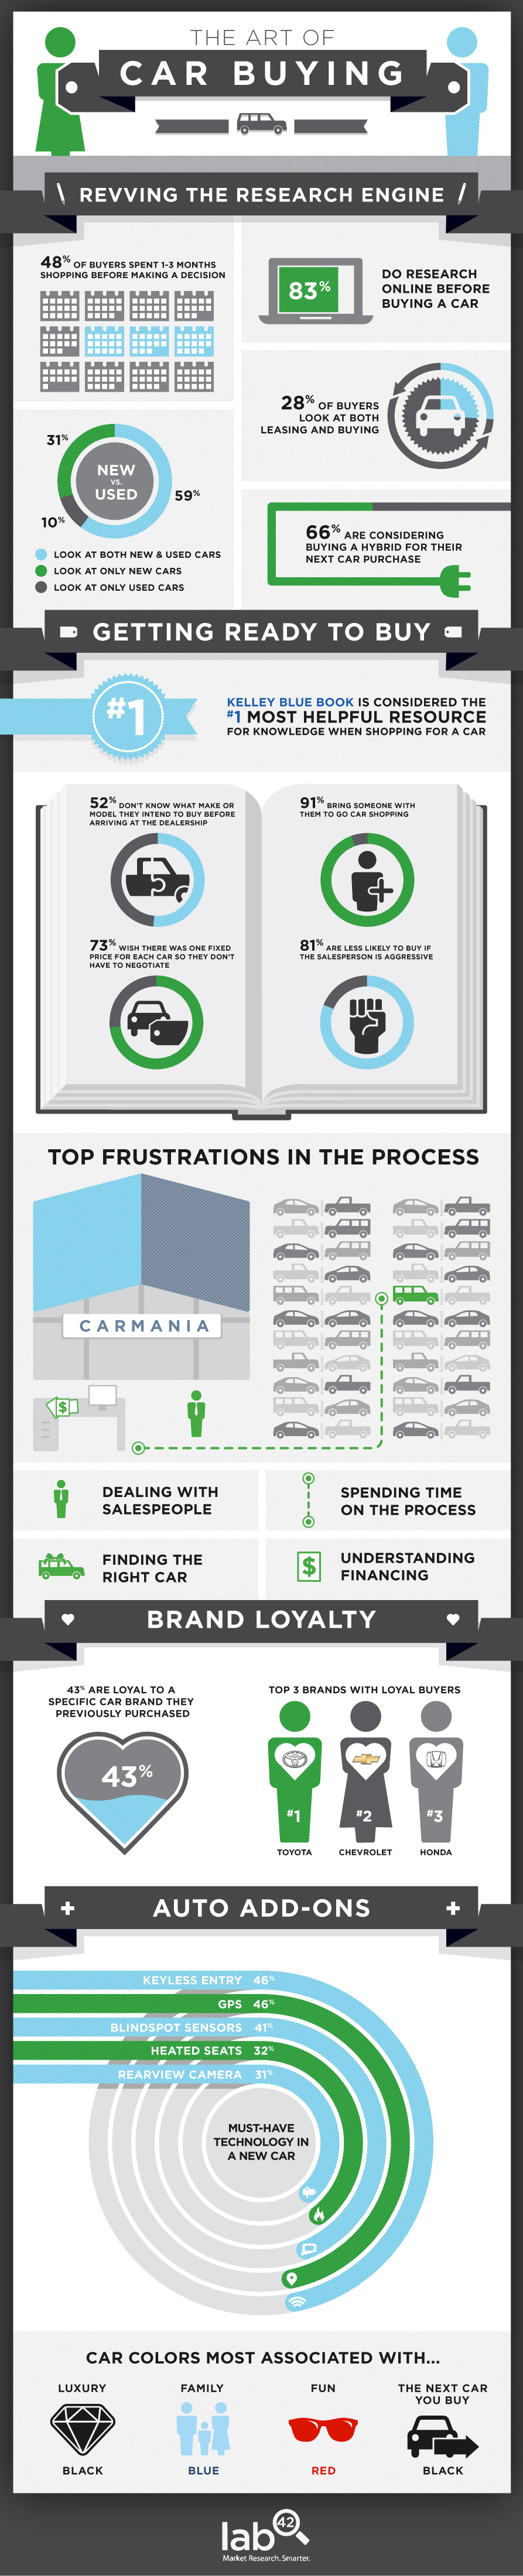 The Art Of Car Buying (Infographic)